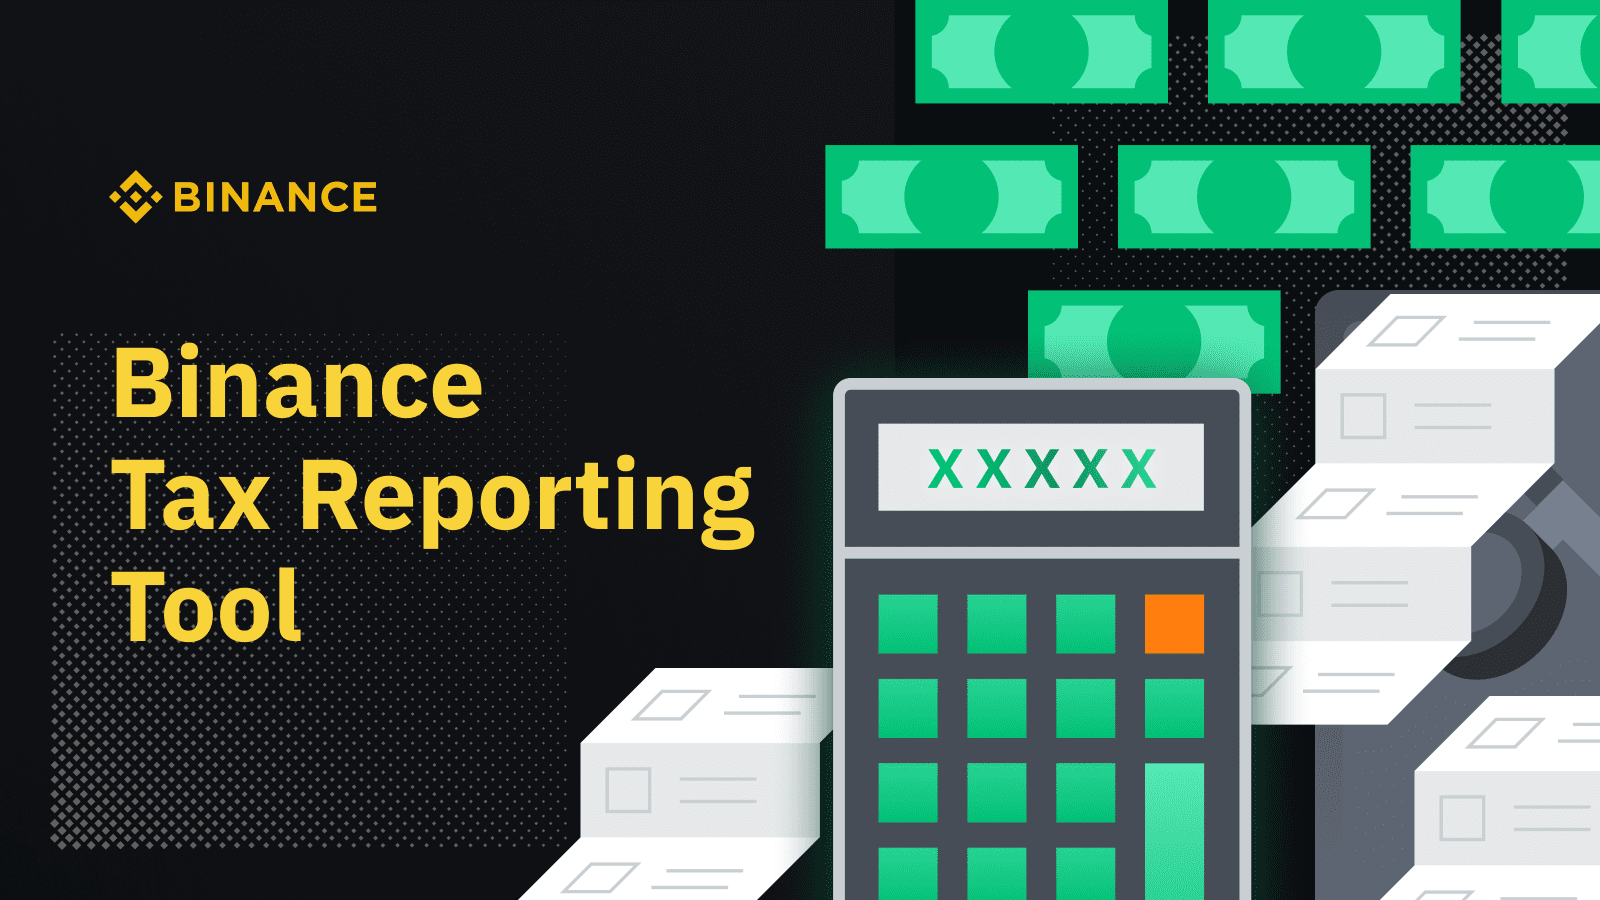 What You Need To Know About The Binance Tax Reporting ToolCryptocurrency Trading Signals, Strategies & Templates   DexStrats